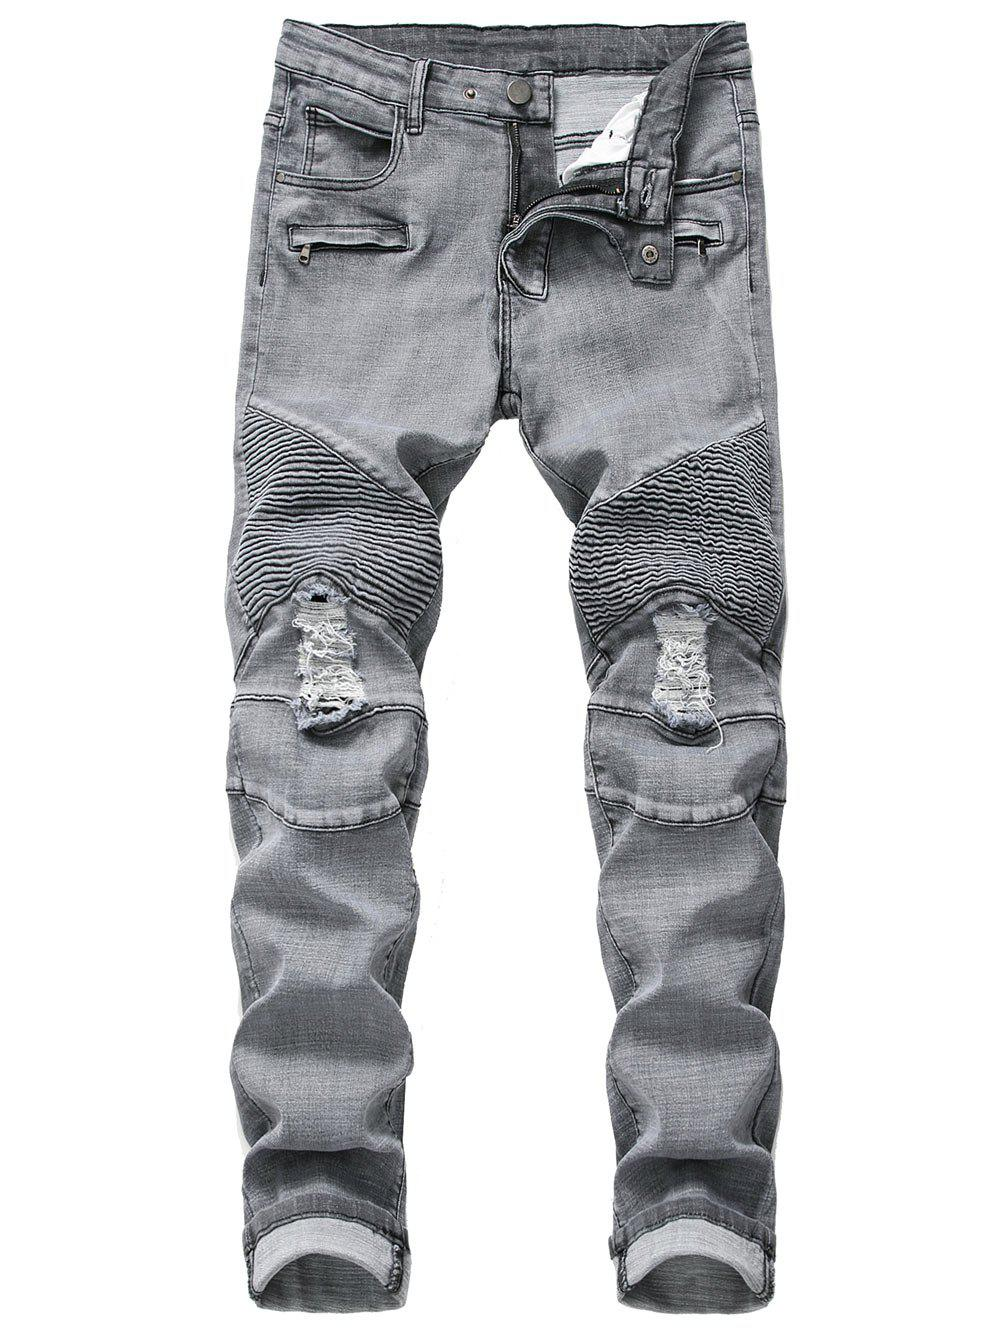 Unique Ruffle Ripped Decoration Casual Jeans